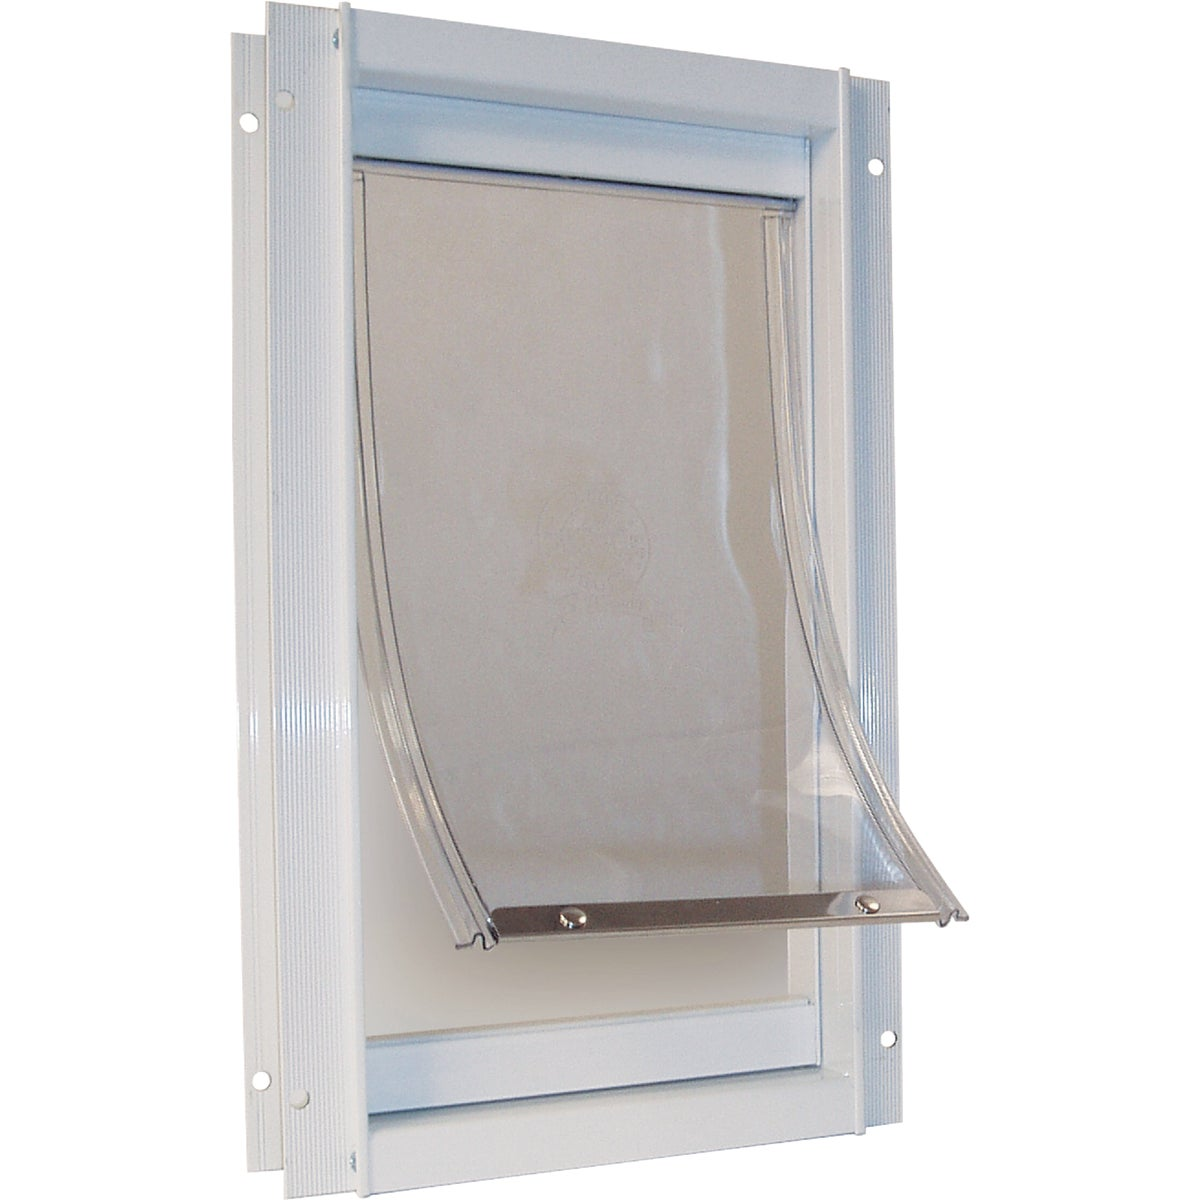 SMALL PLASTIC PET DOOR - PPDS by Ideal Pet Products